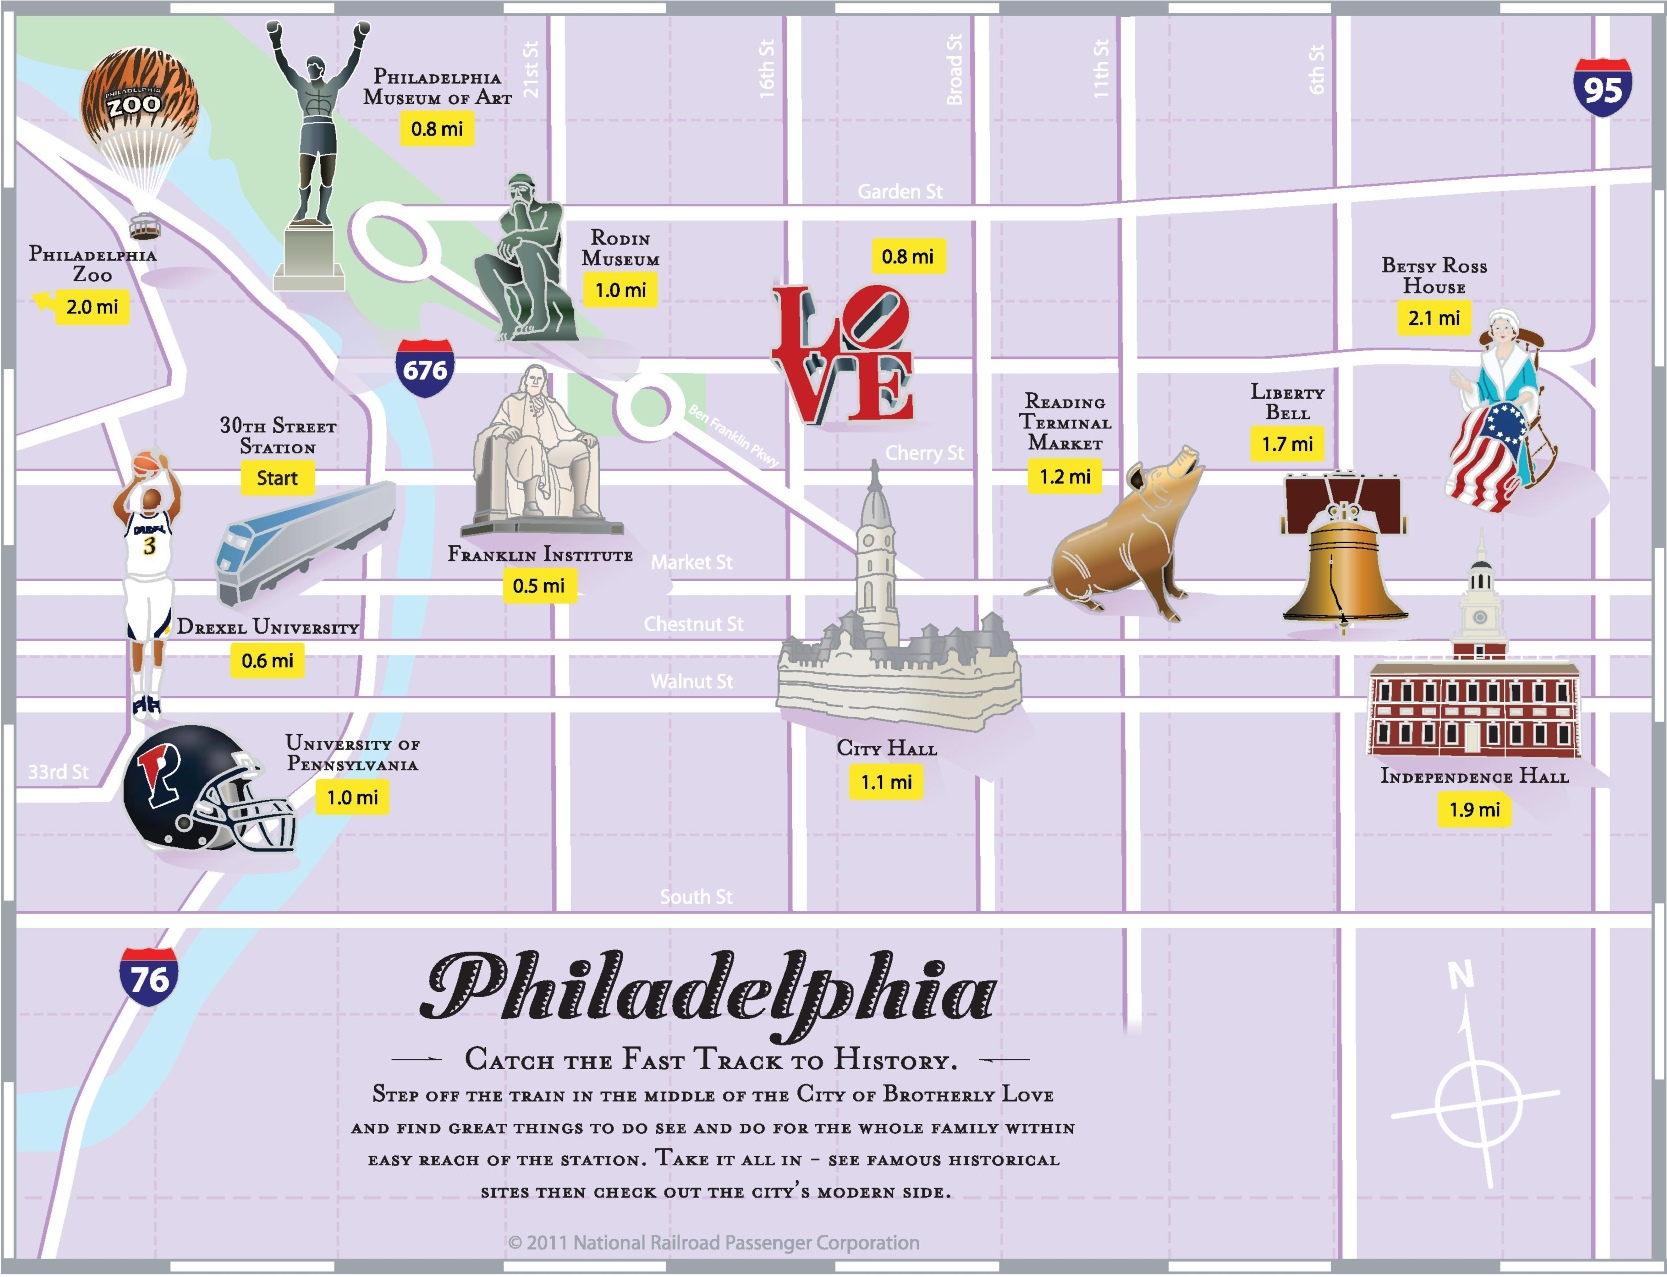 Philadelphia tourist attractions map – Montana Tourist Attractions Map